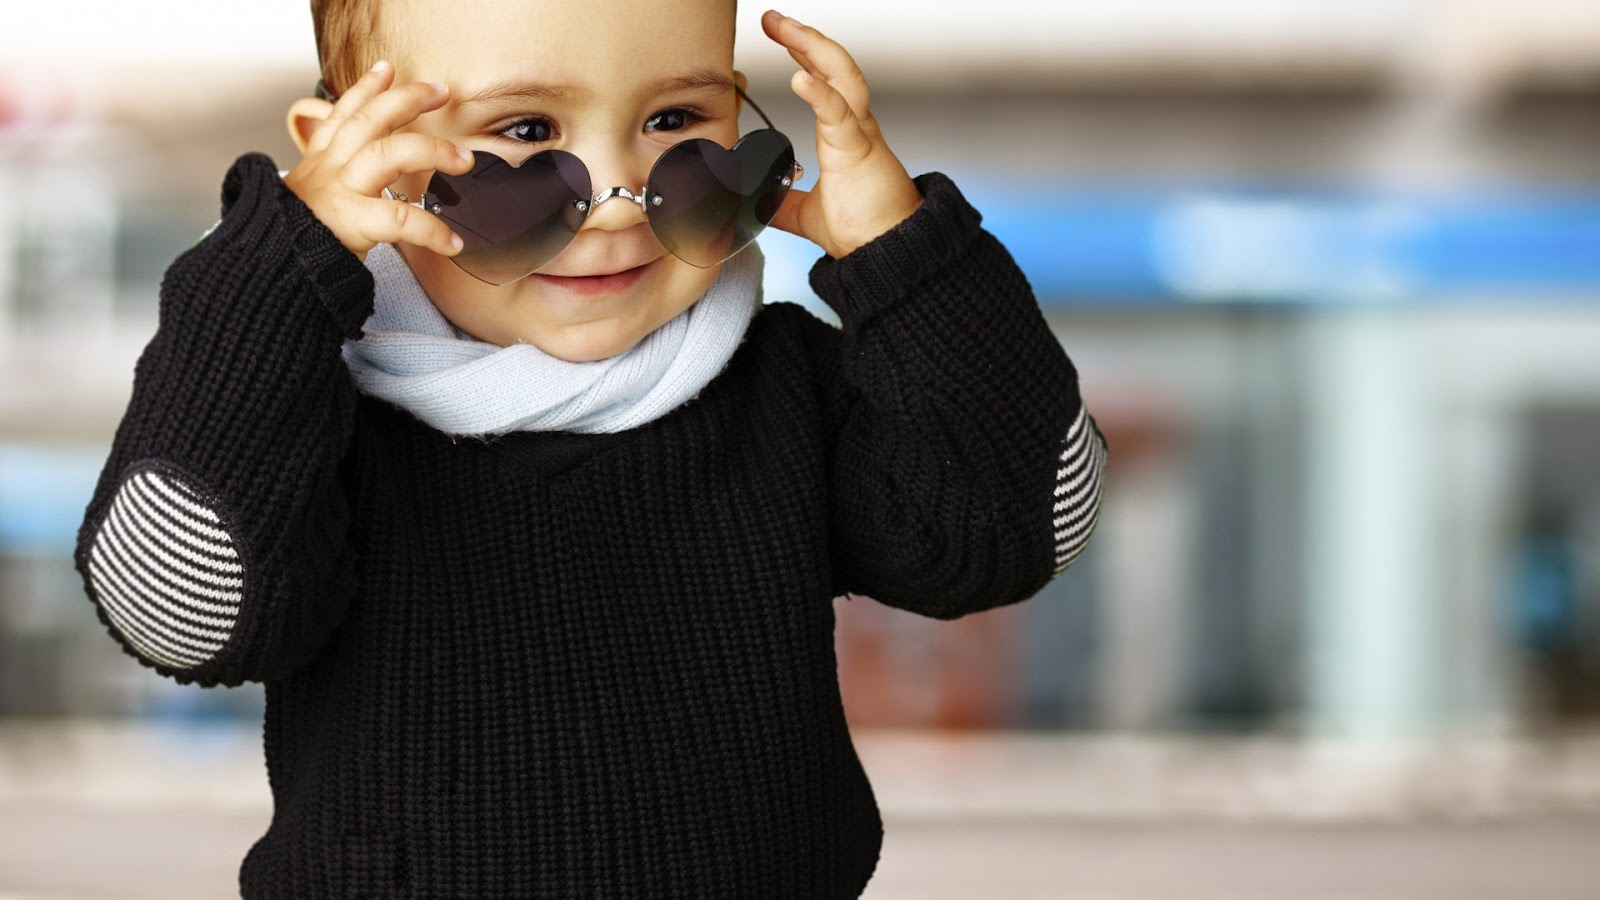 Free download beautiful funny baby boy wearing heart glasses hd funny baby boy picture funny baby boy image funny baby boy photo hd voltagebd Choice Image